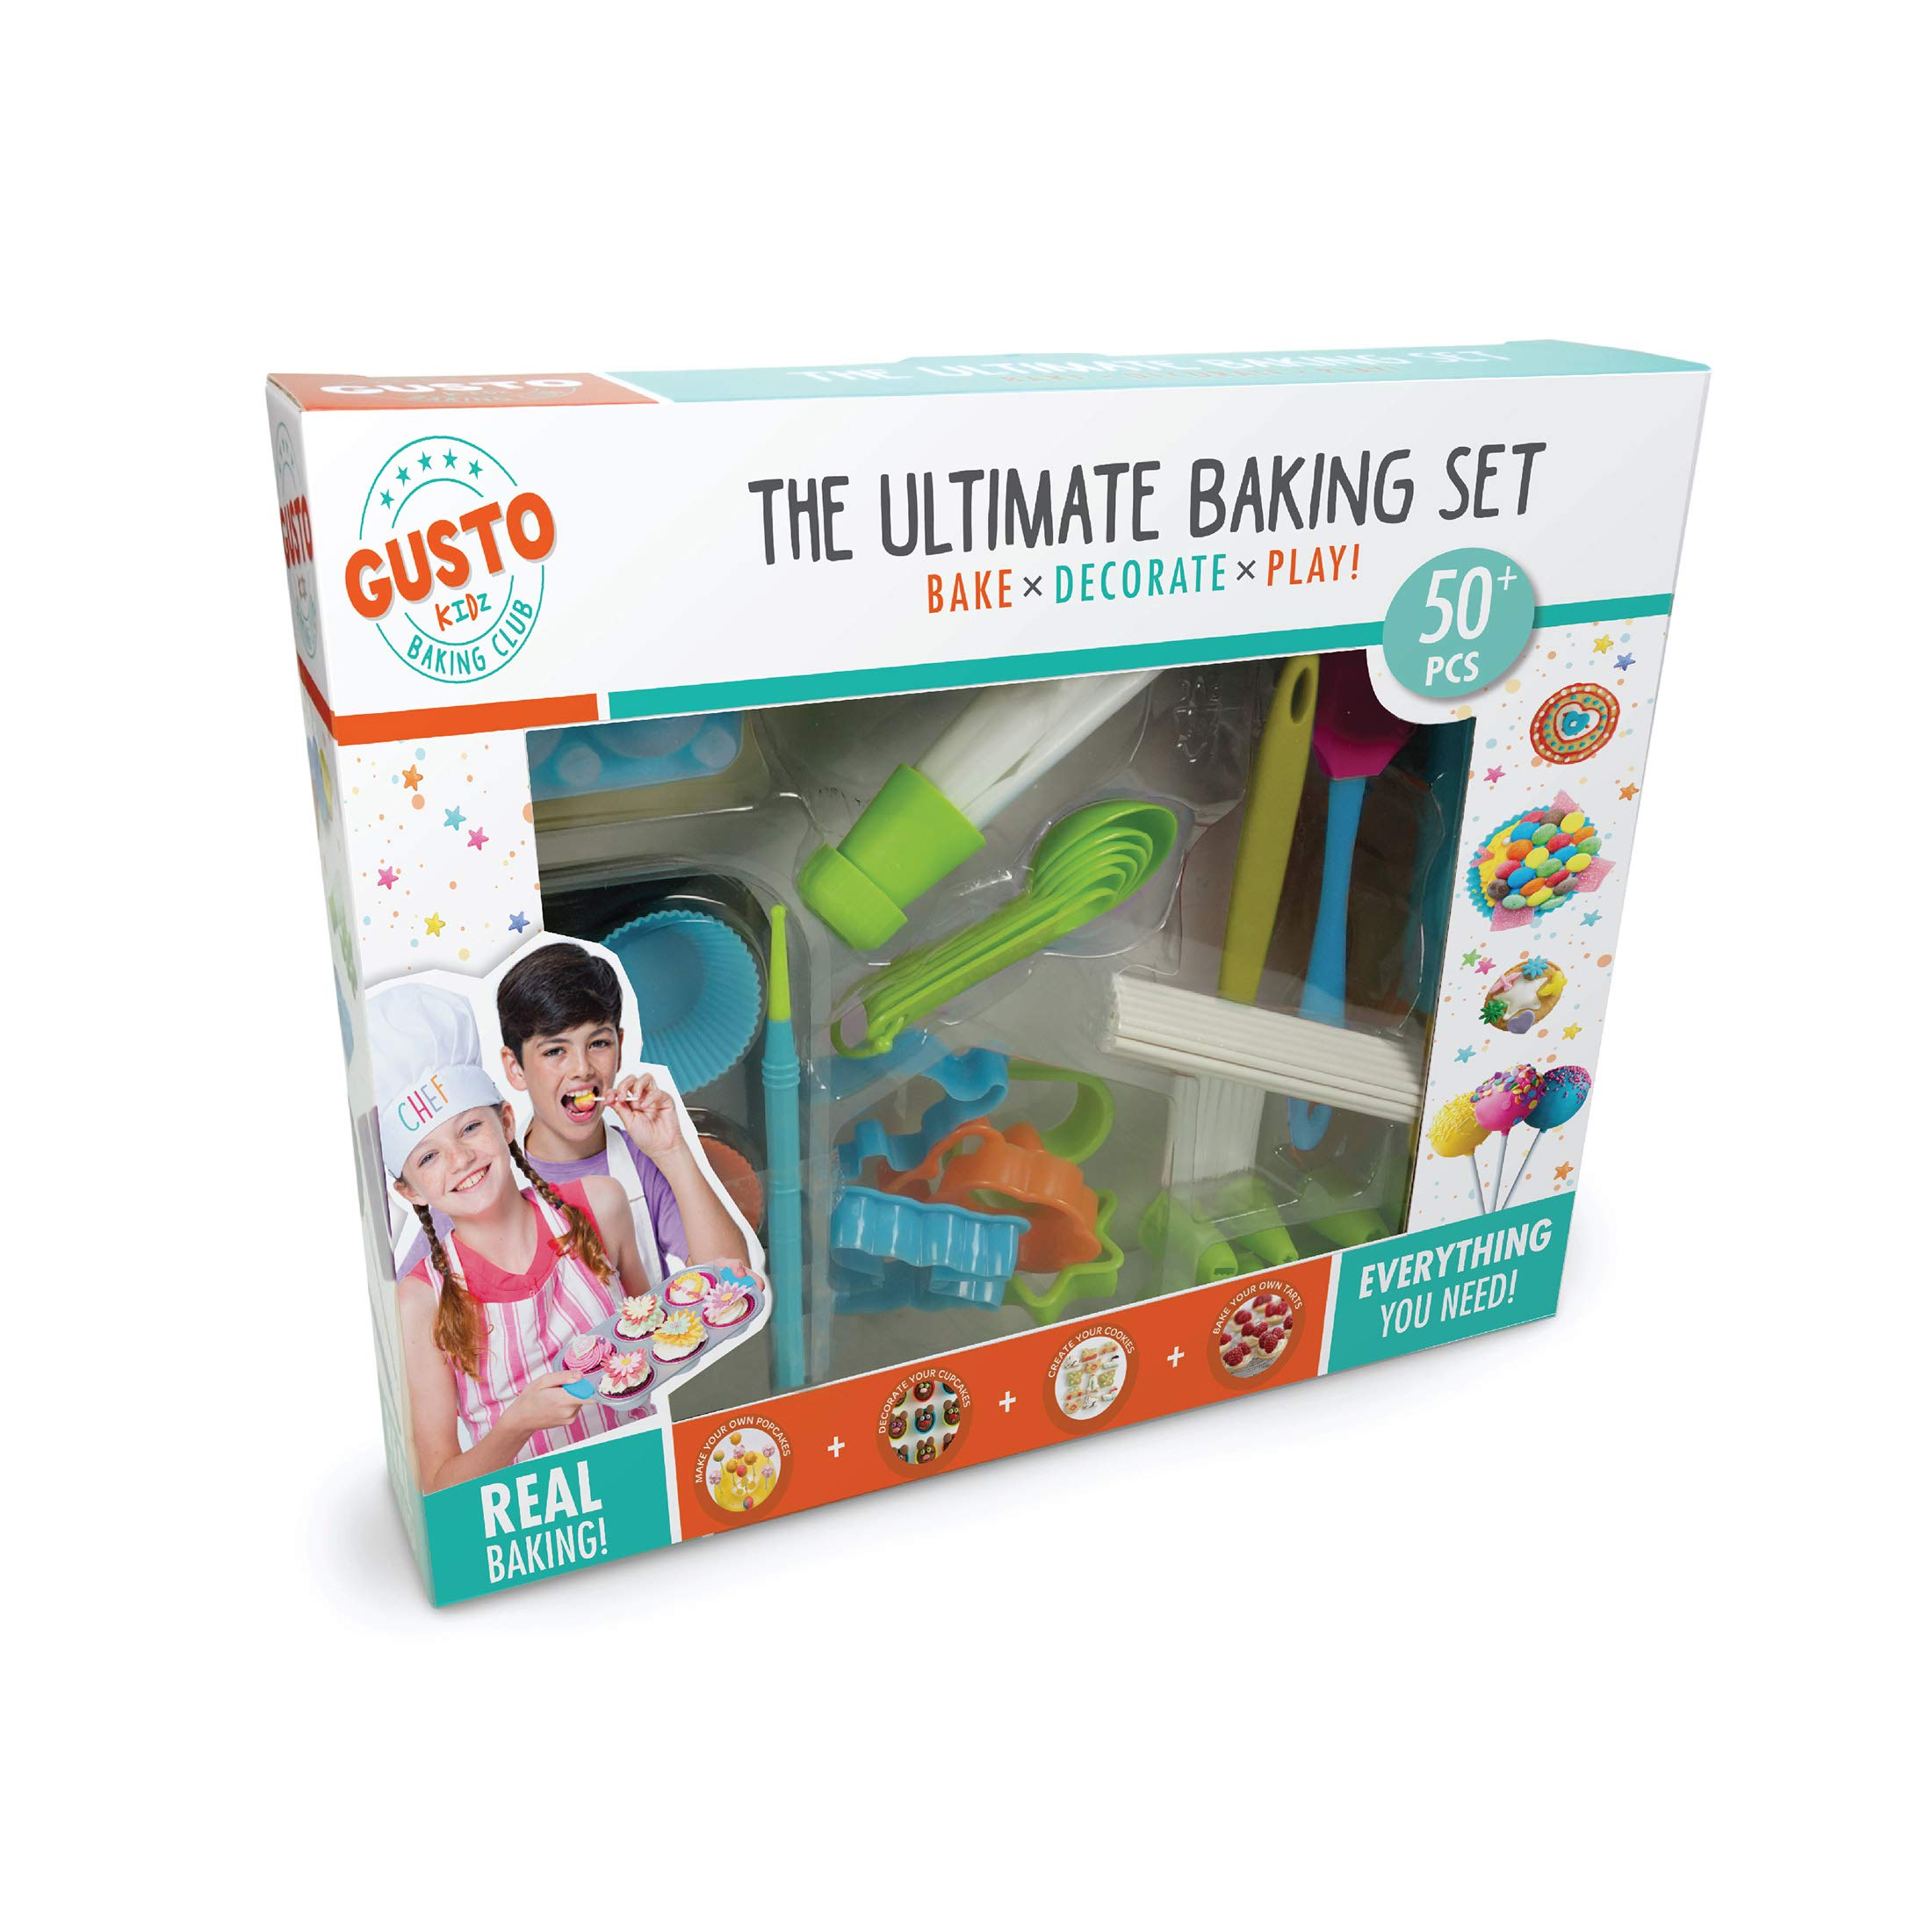 Gusto Ultimate Baking Set - Bake, Decorate, Play by Gusto